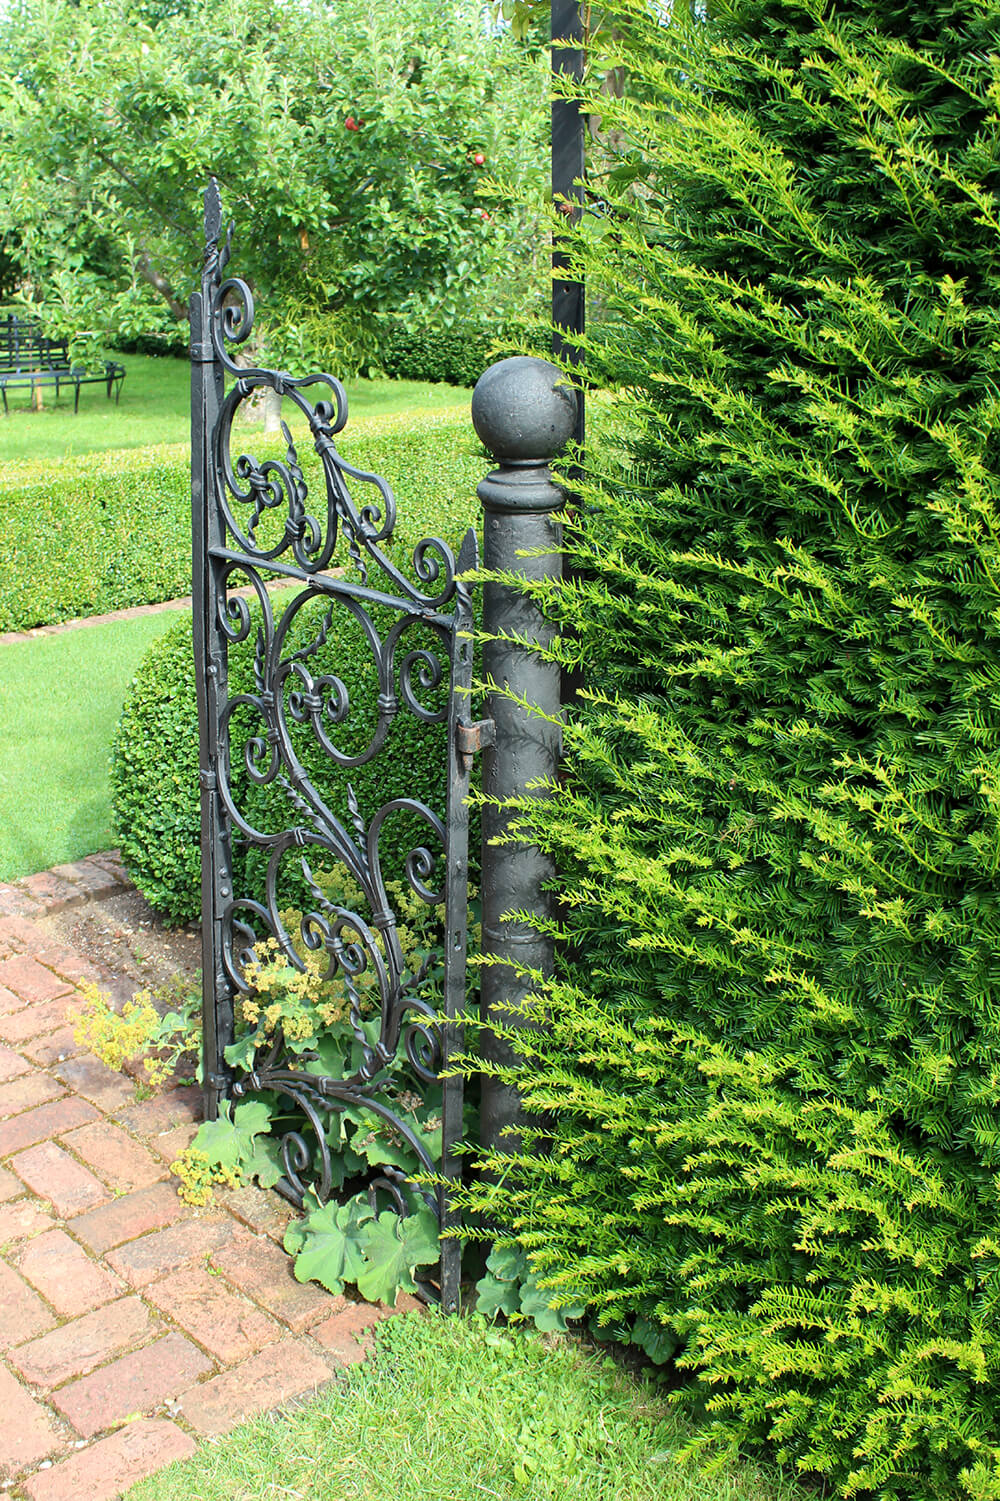 The elegant scrollwork in this gate contrasts the sharp shapes of the manicured hedges in the background.